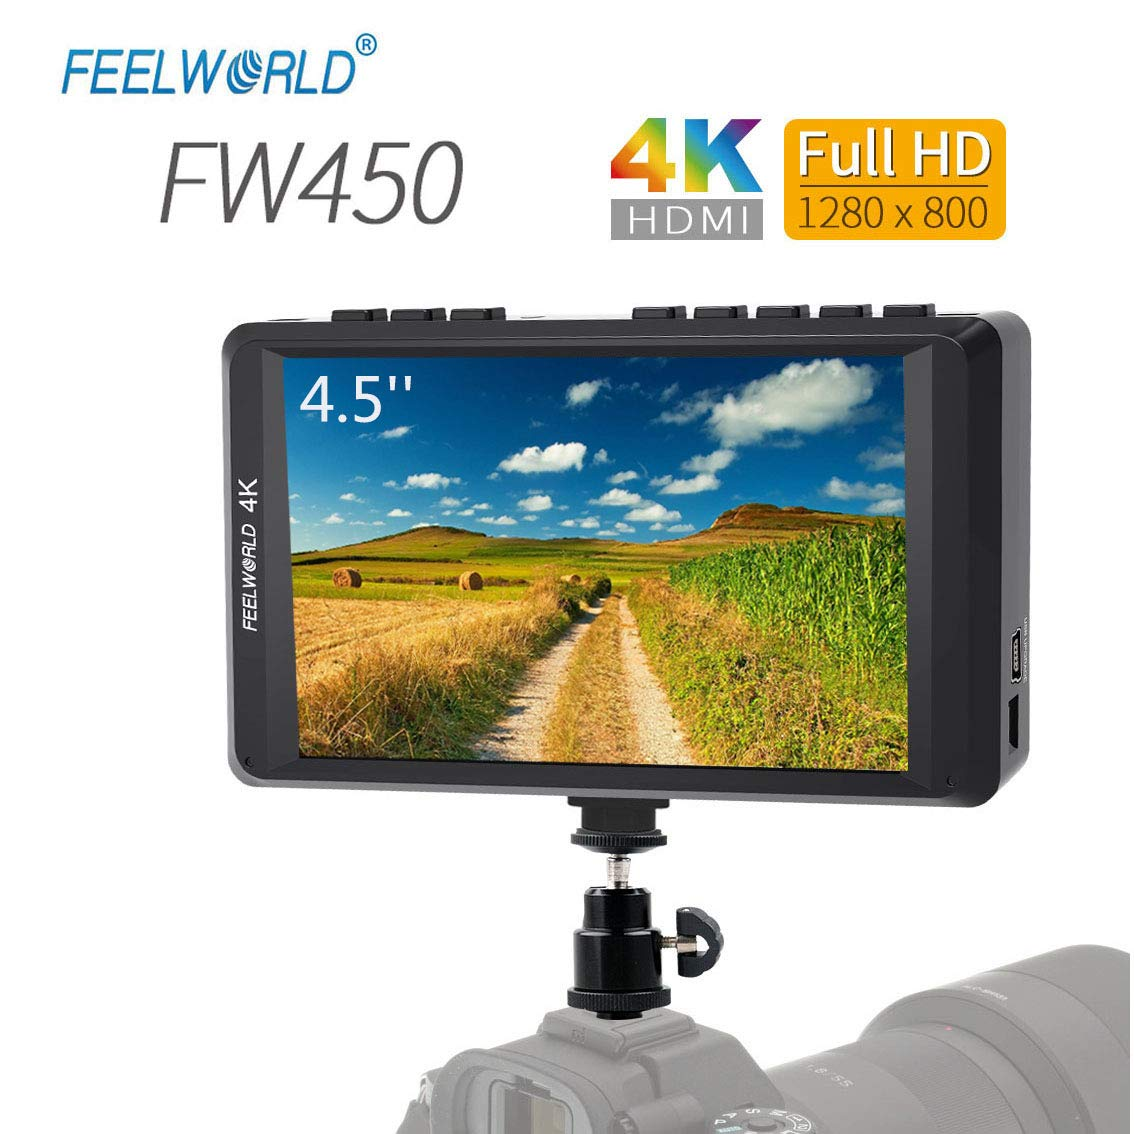 Monitor Camara Feelworld Fw450 4.5inch 1280x800 4k Hdmi